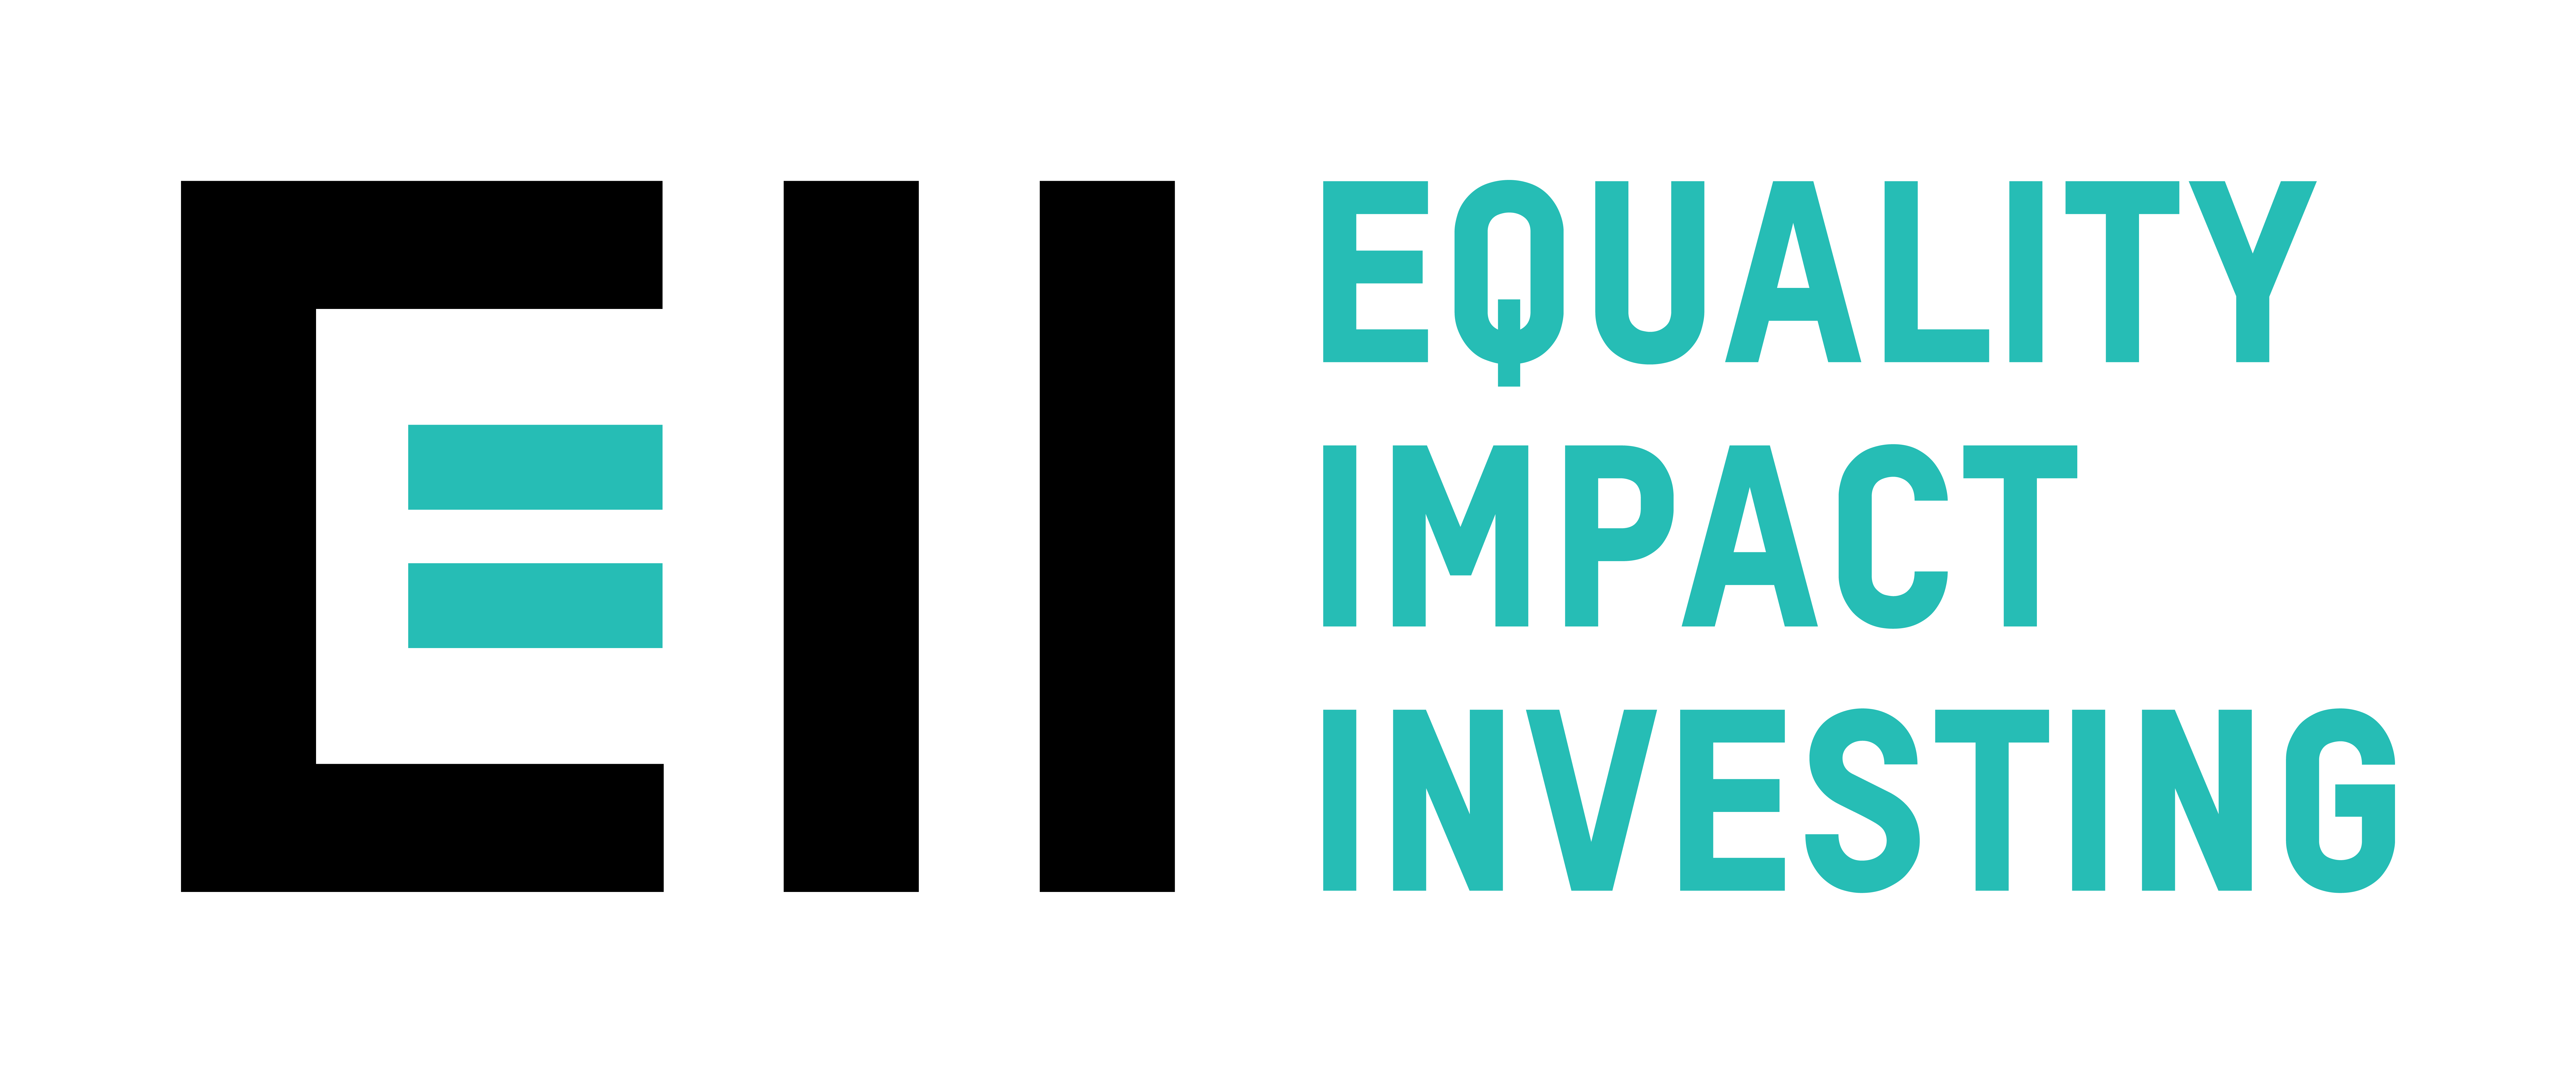 Equality Impact Investing